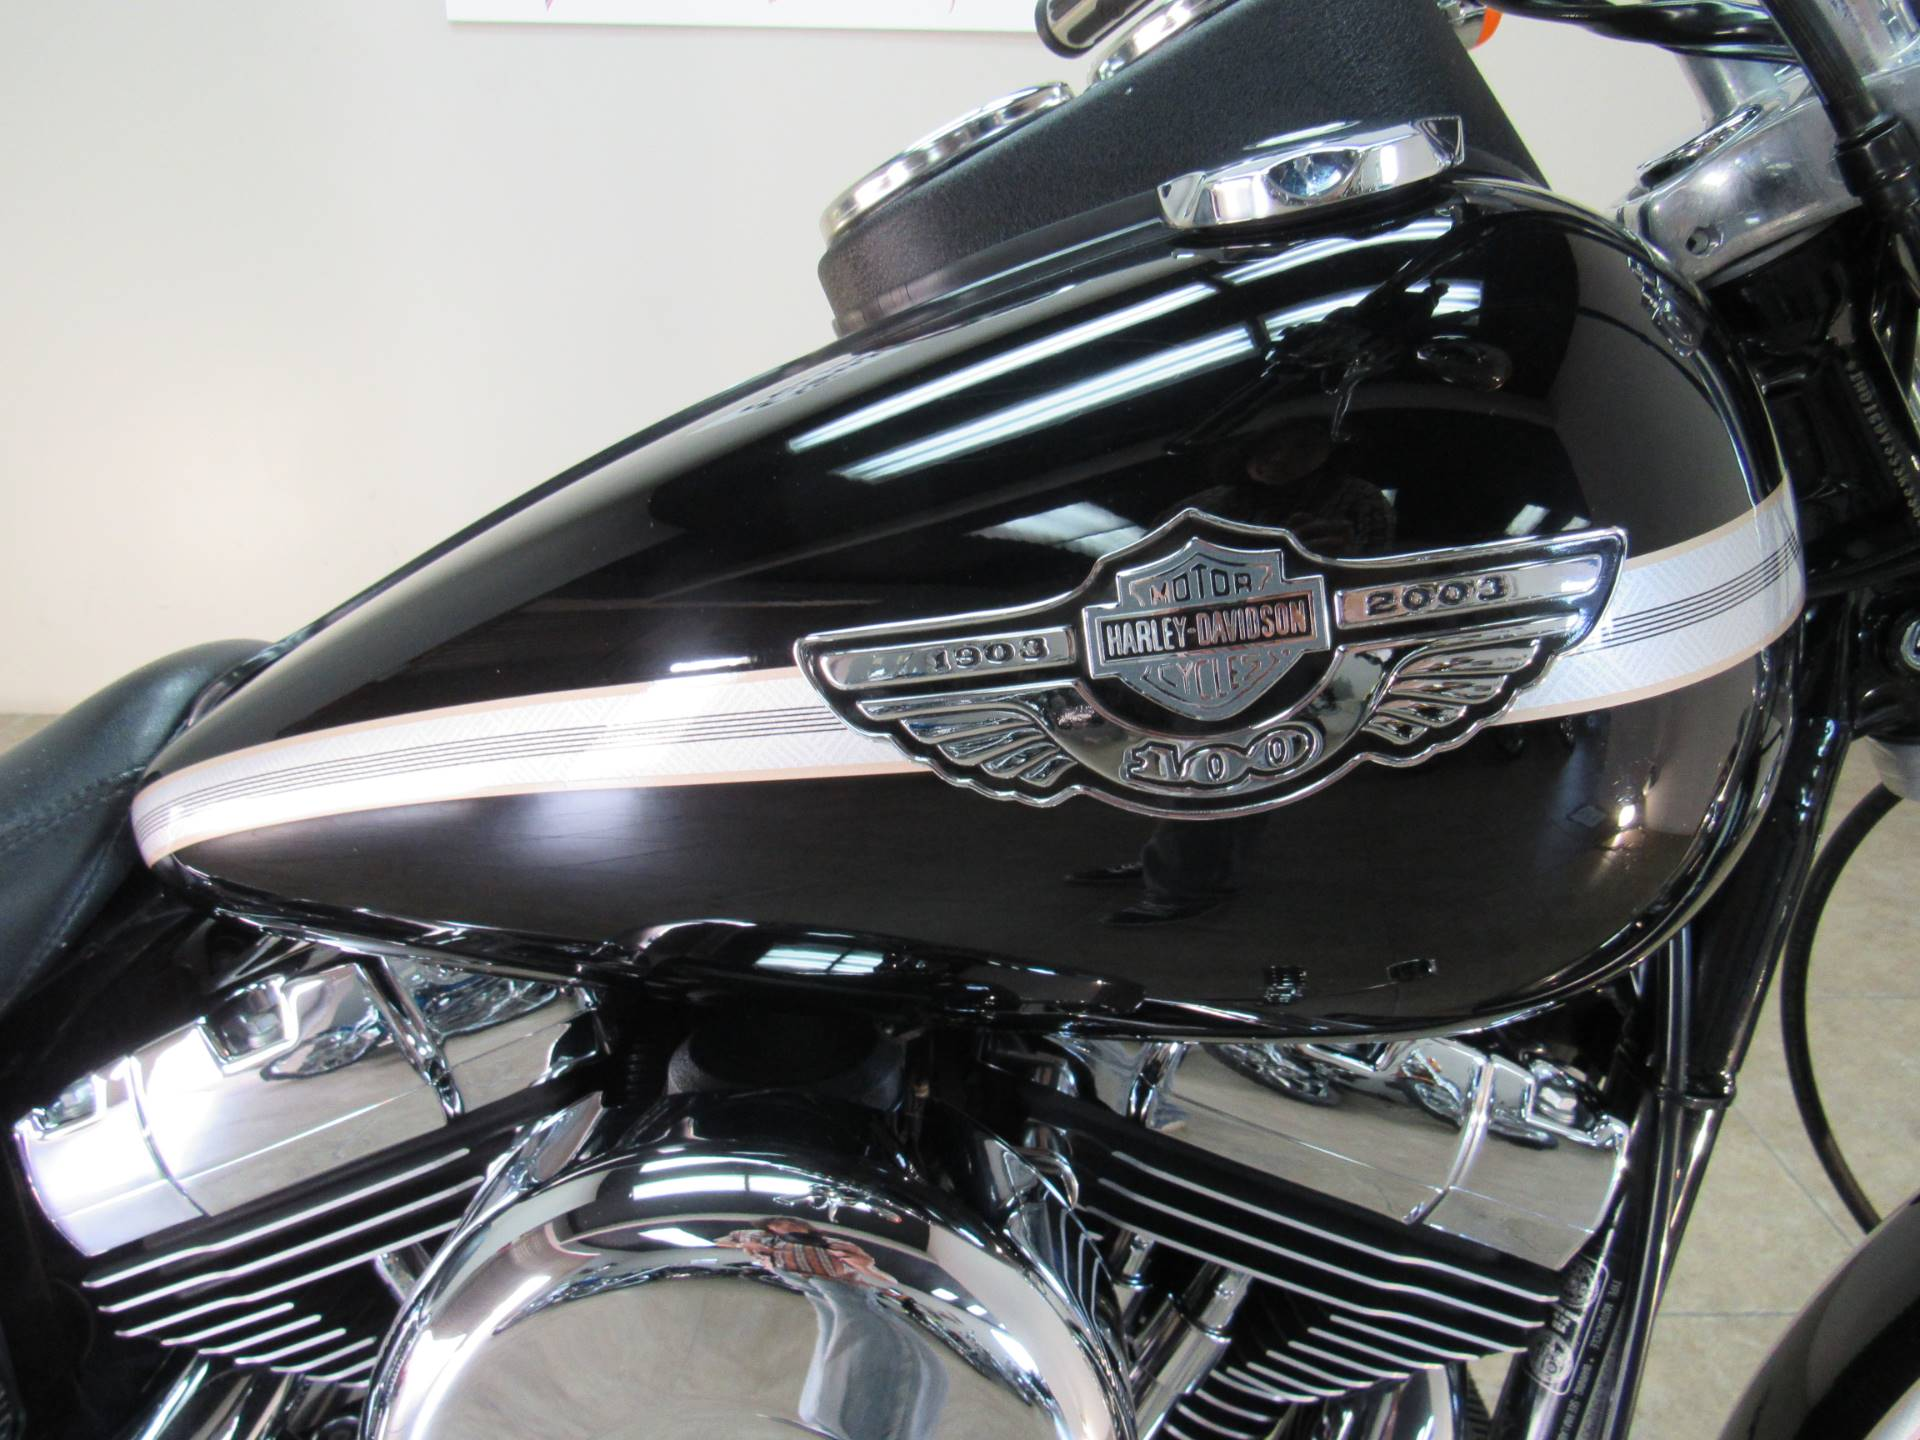 2003 Harley-Davidson FXDL Dyna Low Rider® in Temecula, California - Photo 4